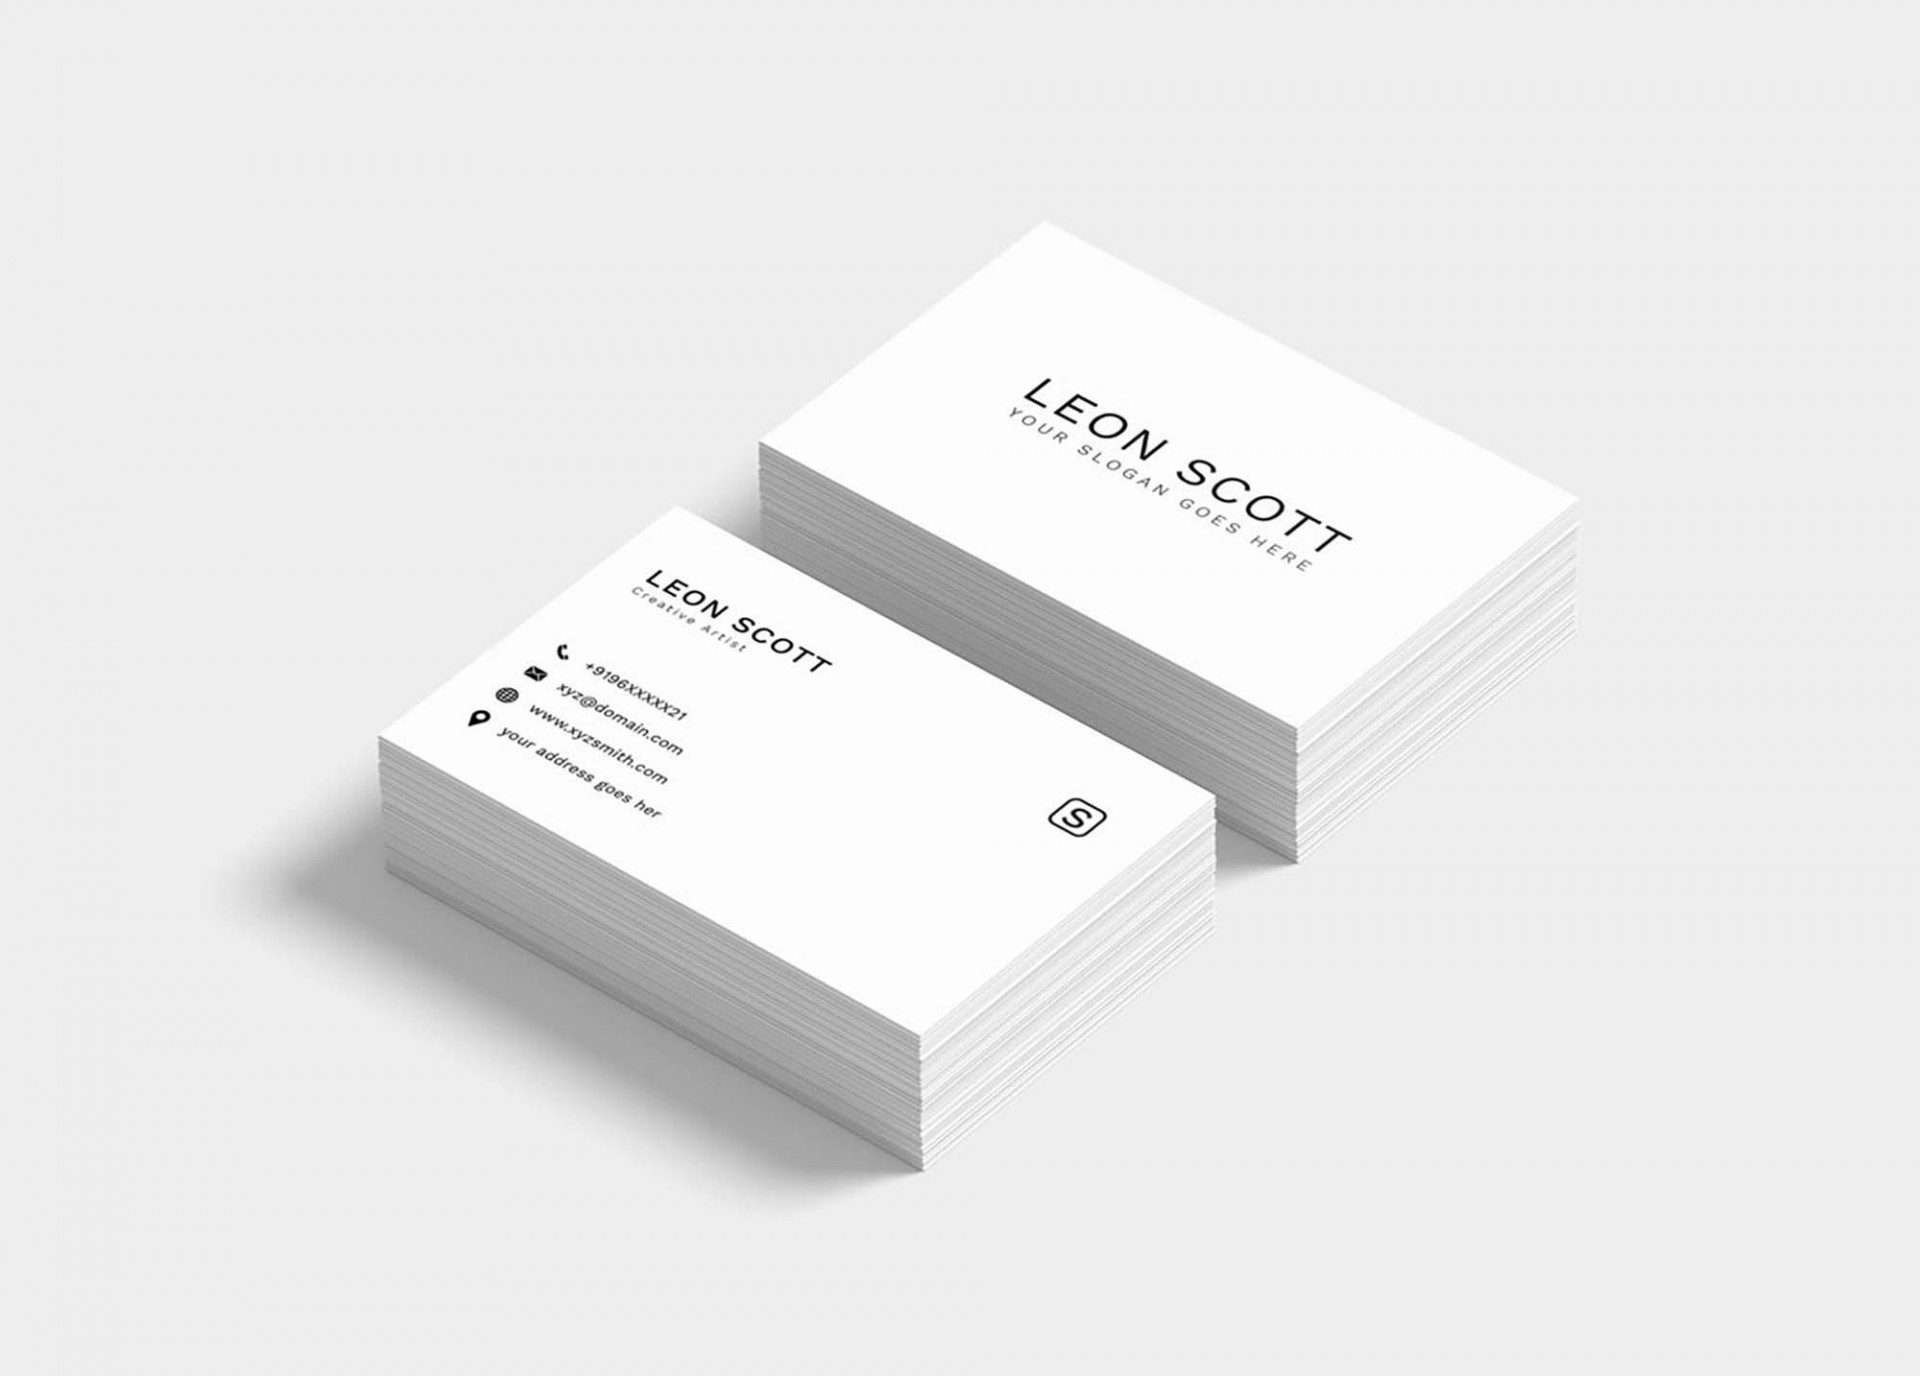 006 Shocking Simple Busines Card Template Photoshop Sample 1920